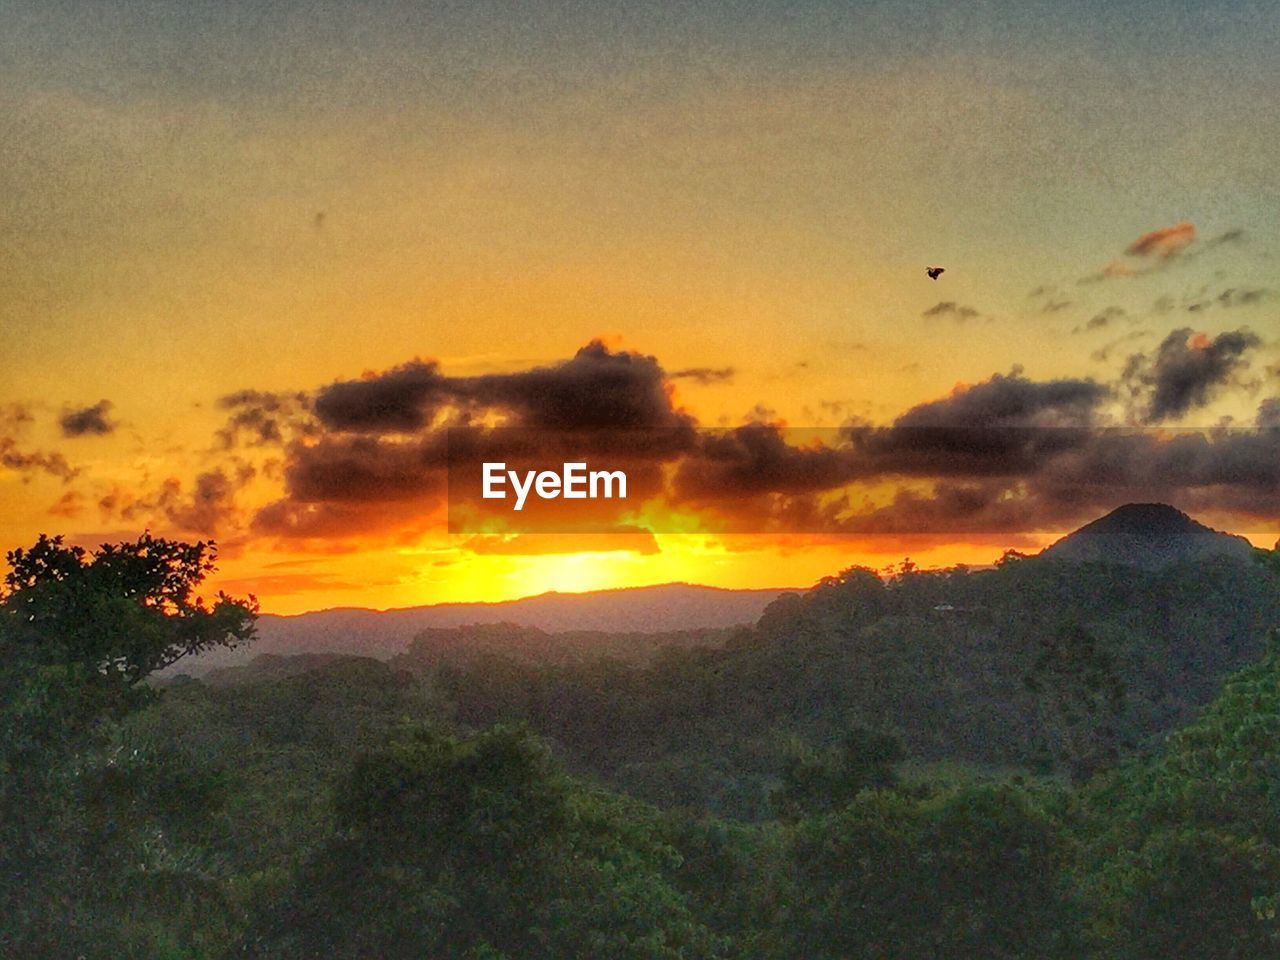 sunset, nature, beauty in nature, tranquil scene, tree, scenics, tranquility, mountain, sky, landscape, no people, outdoors, flying, day